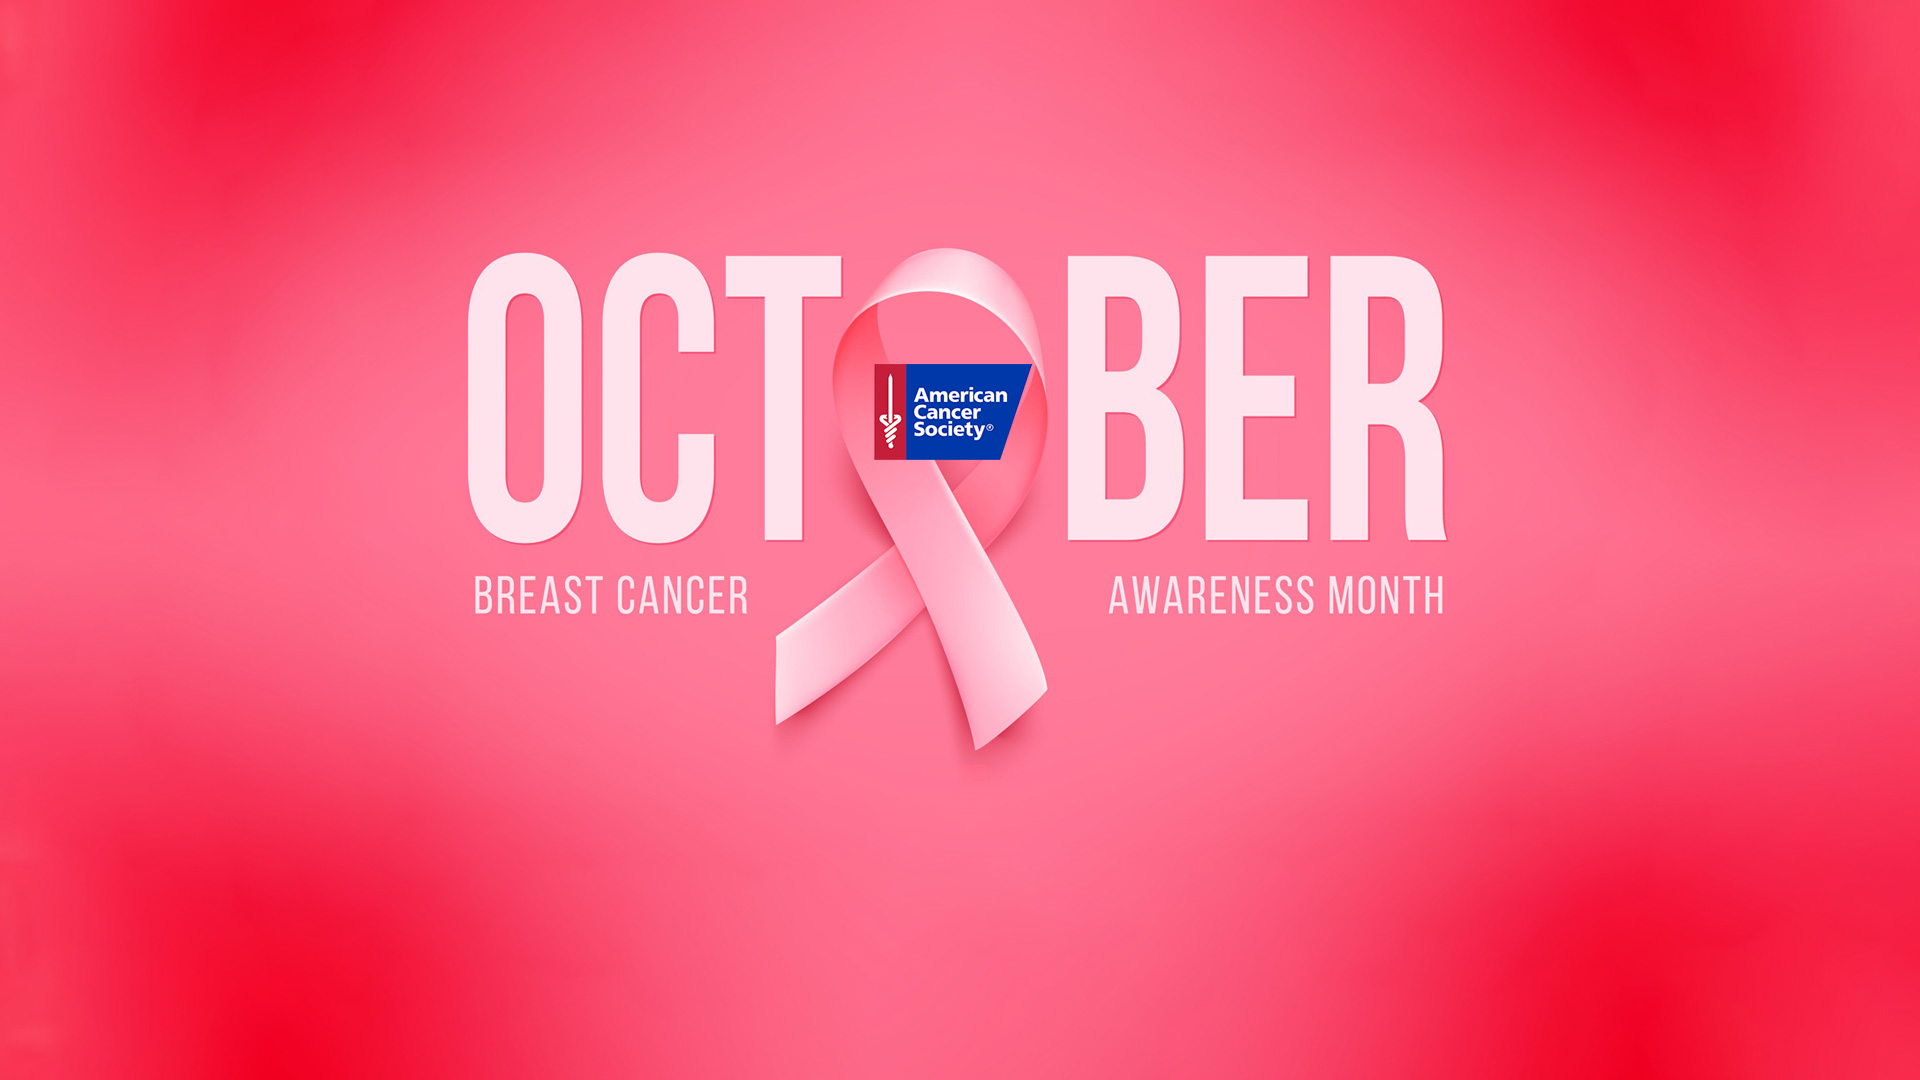 bkgnd-october-is-breast-cancer-awareness-month